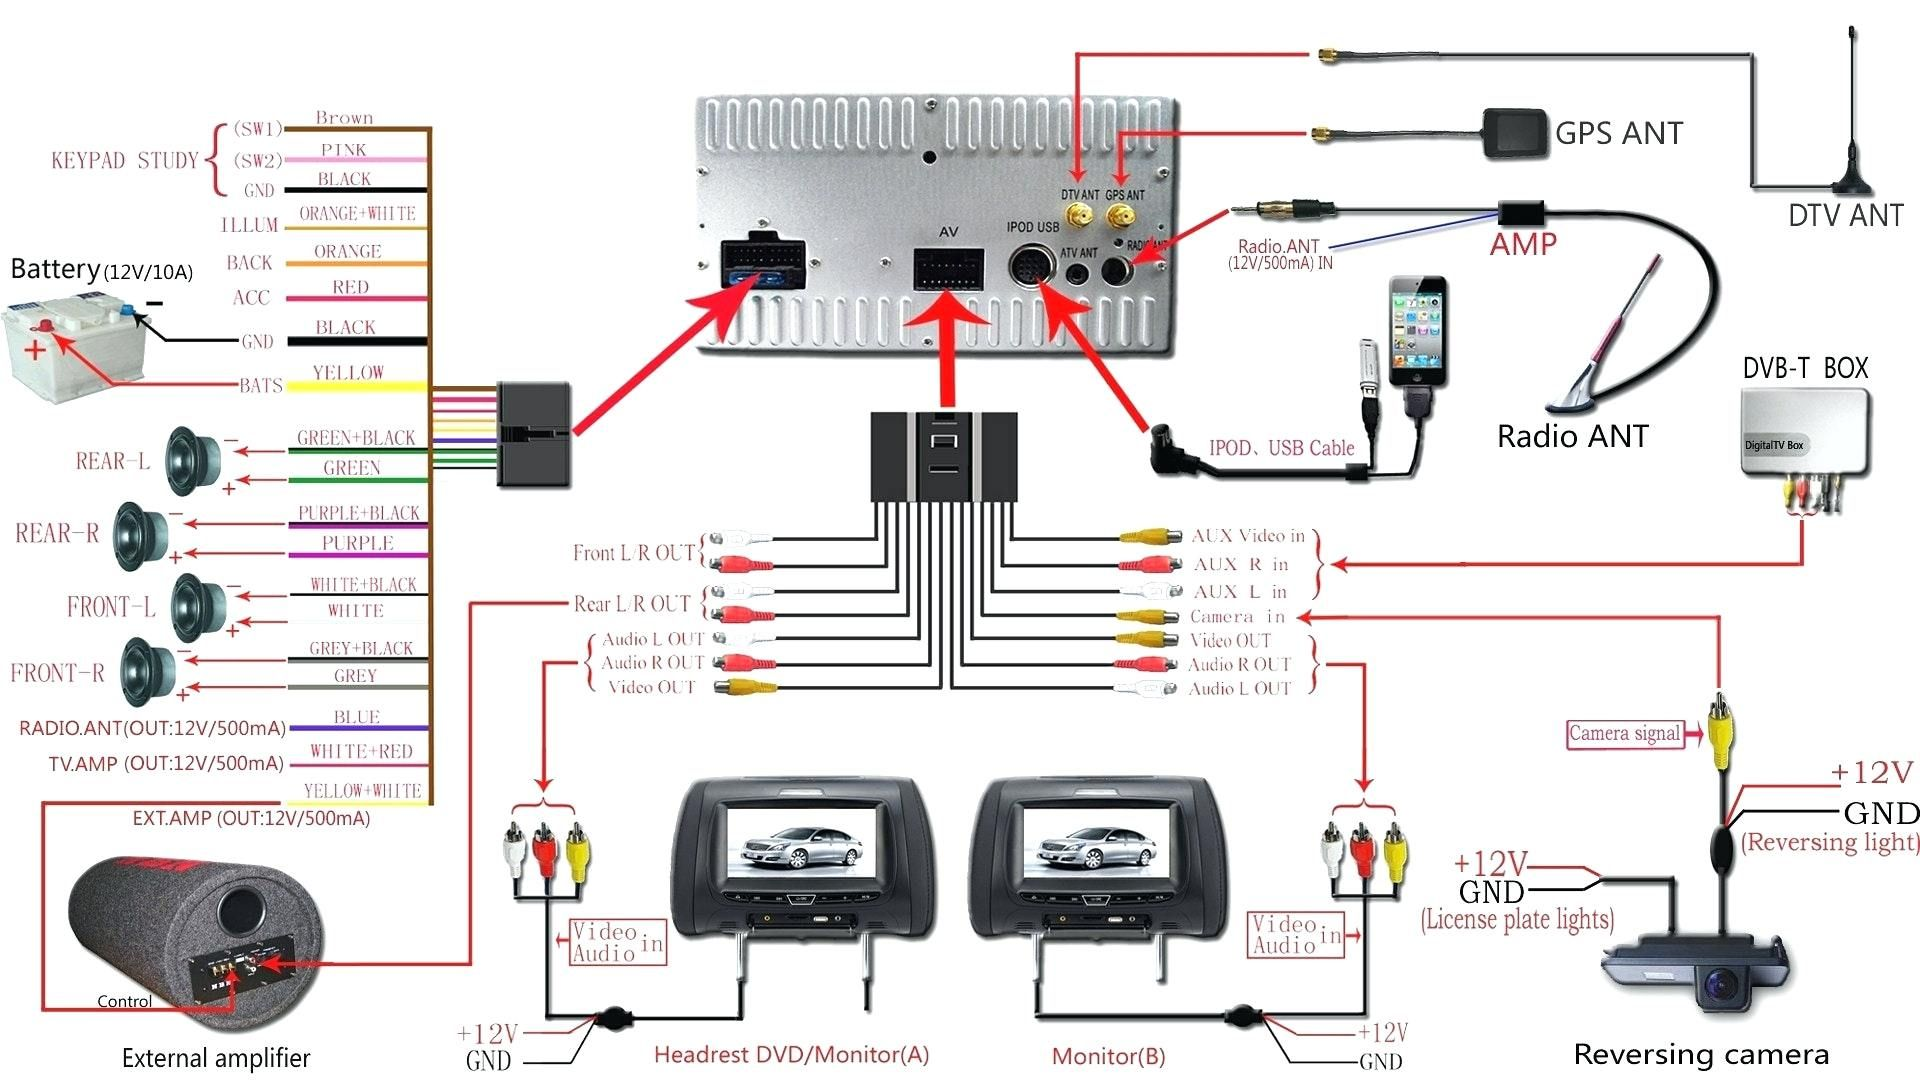 live sound system setup diagram diagrams wiring home fuse box whole house audio with archived on wiring diagram category with post live sound wiring diagram  [ 1920 x 1080 Pixel ]